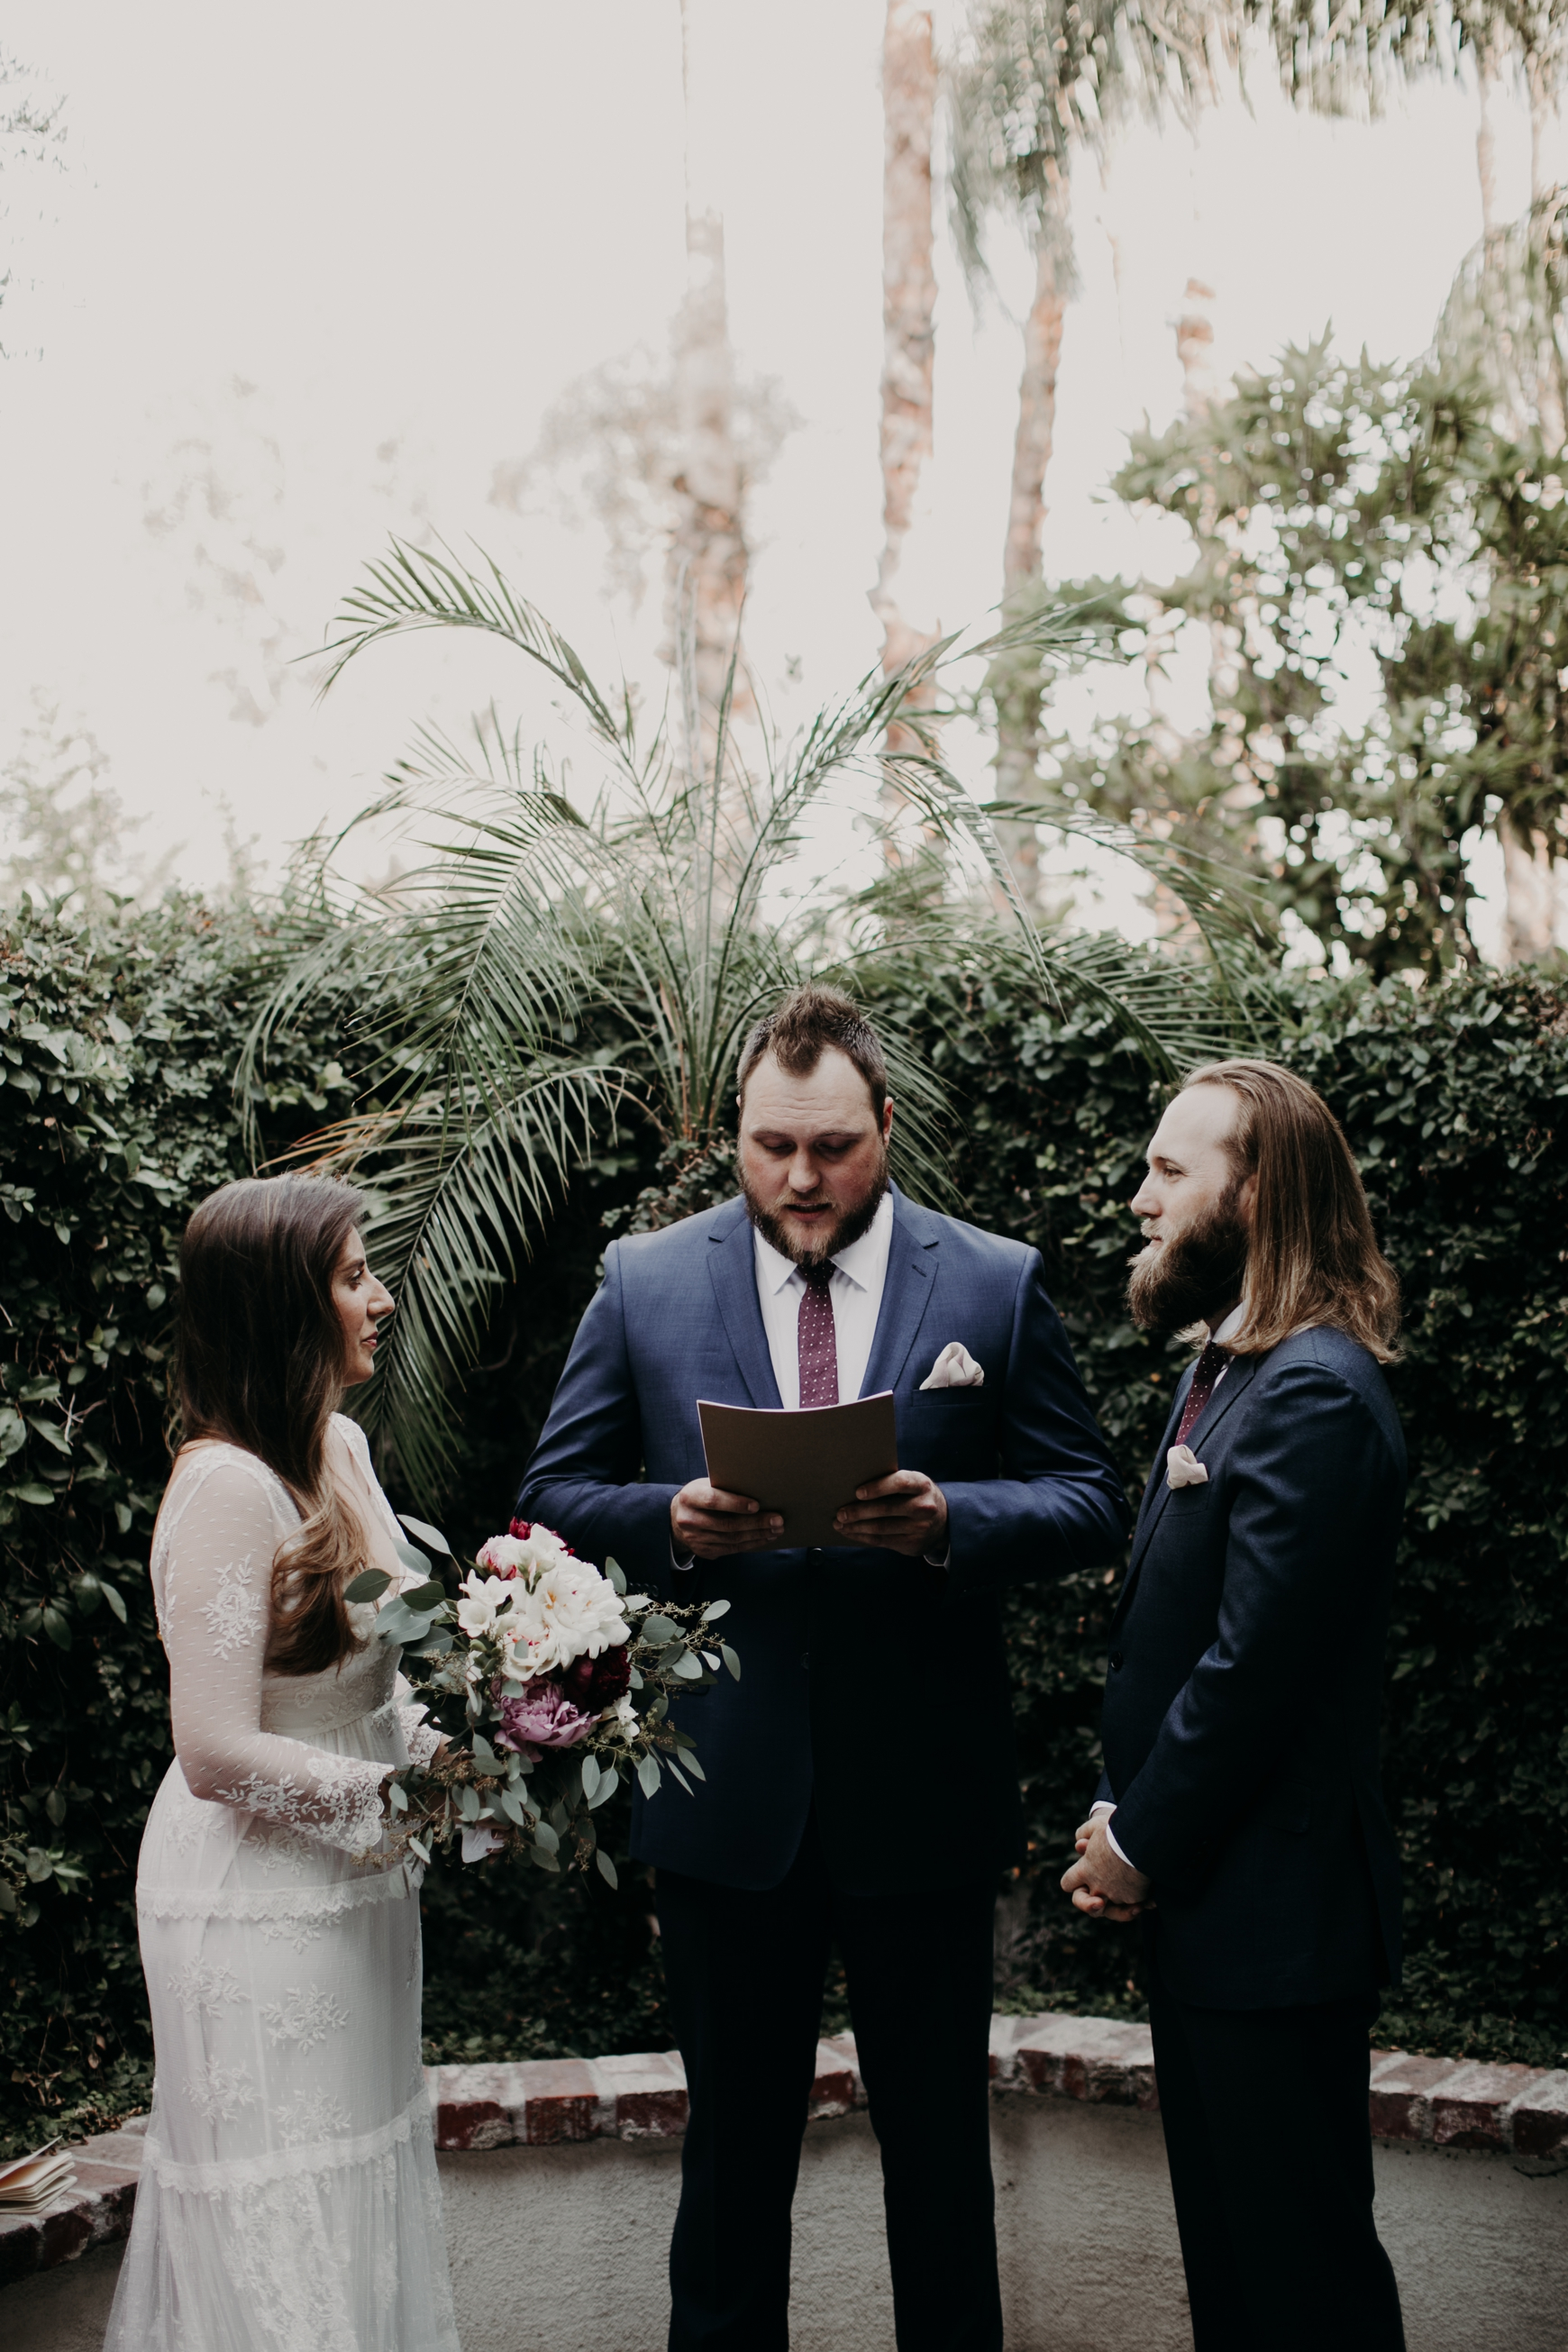 The Colony Palms Hotel Palm Springs Wedding Jaclyn & Tyson Emily Magers Photography-196.jpg